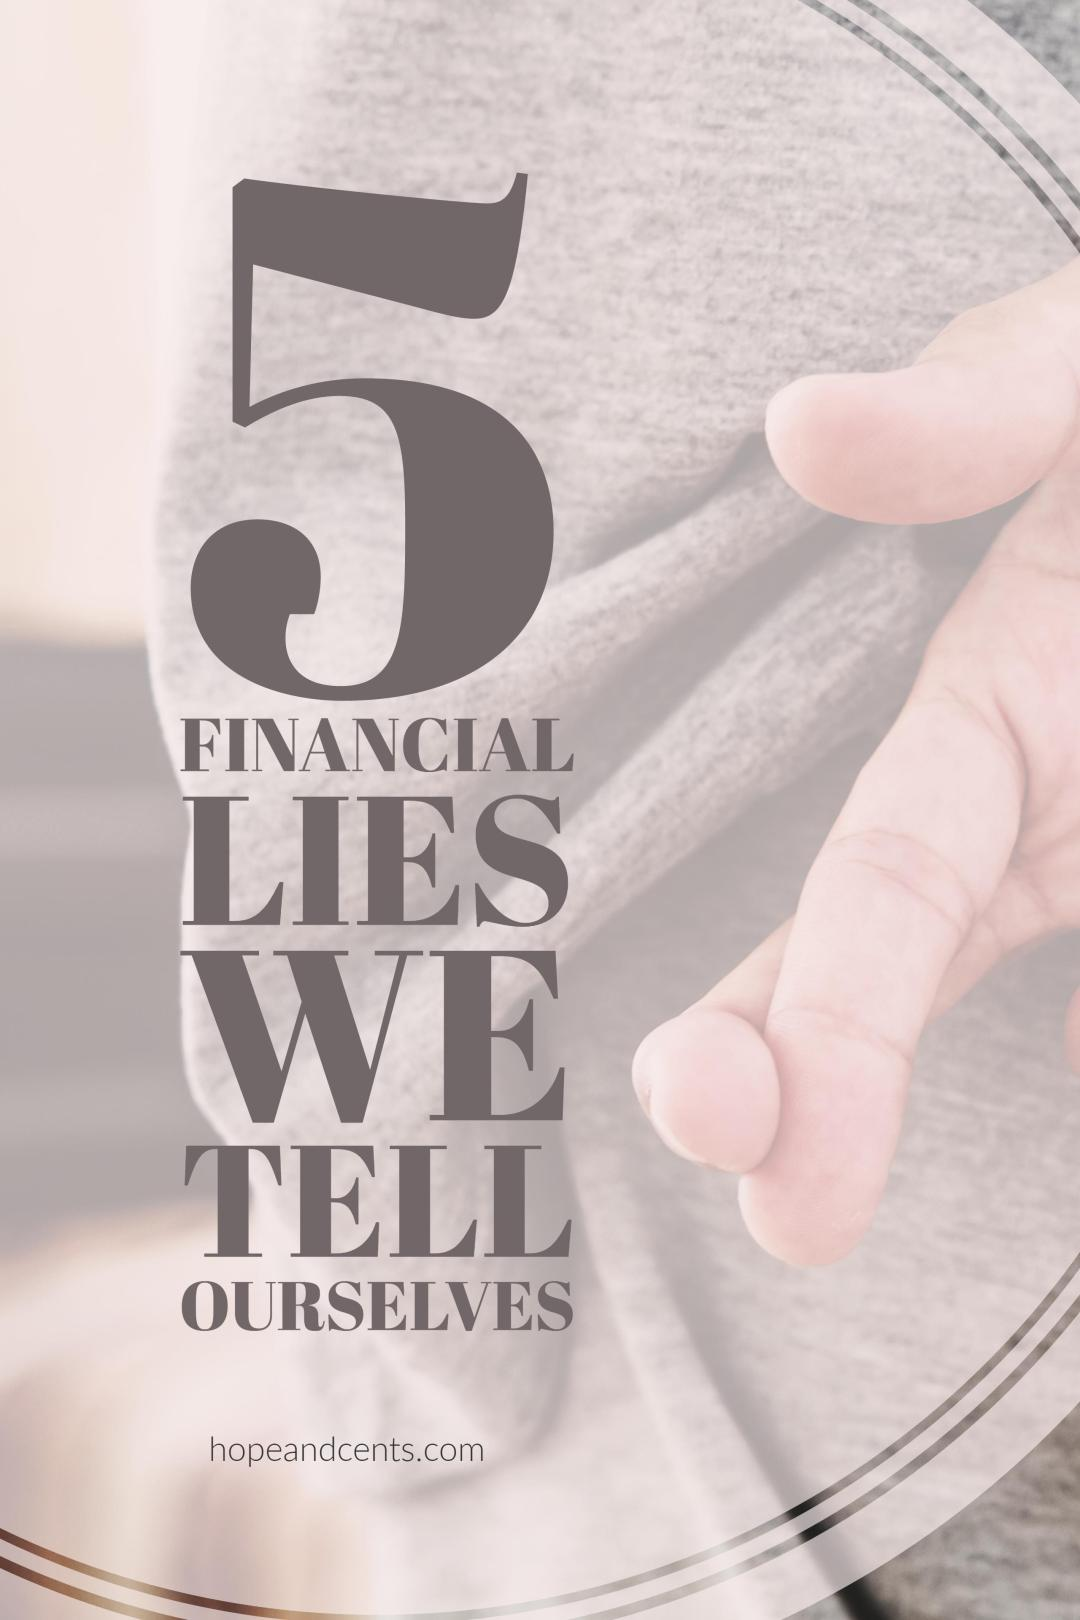 We don't mean to, but we lie to ourselves. We tell ourselves what we want to hear to justify our choices. Unfortunately, financial lies have lasting effects.